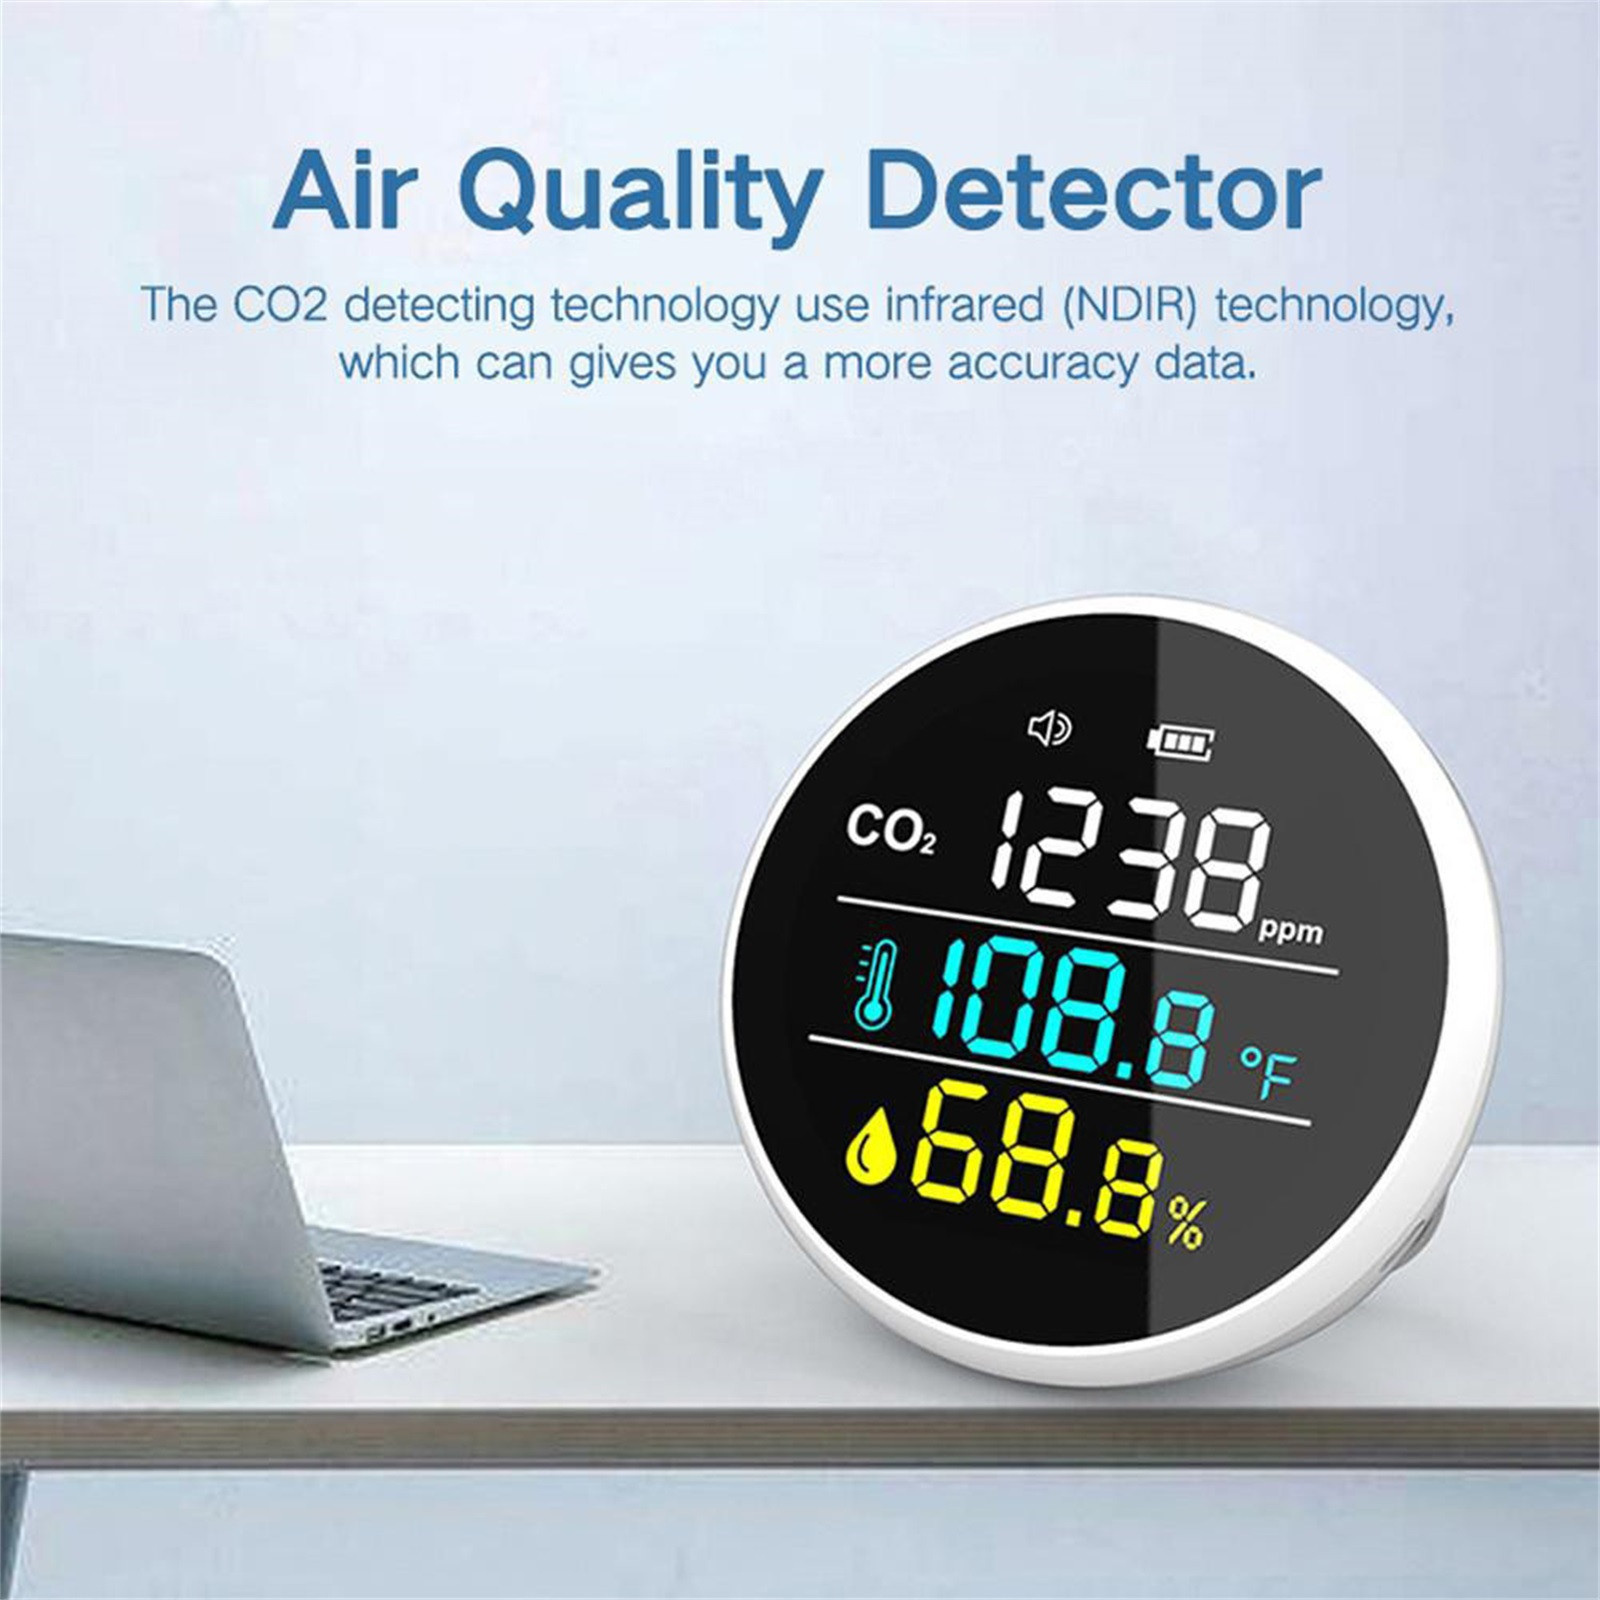 Portable Co2 Measuring Instrument Air Quality Detector High Precision Usb Powered Real Time Monitoring Carbon Dioxide Sensor